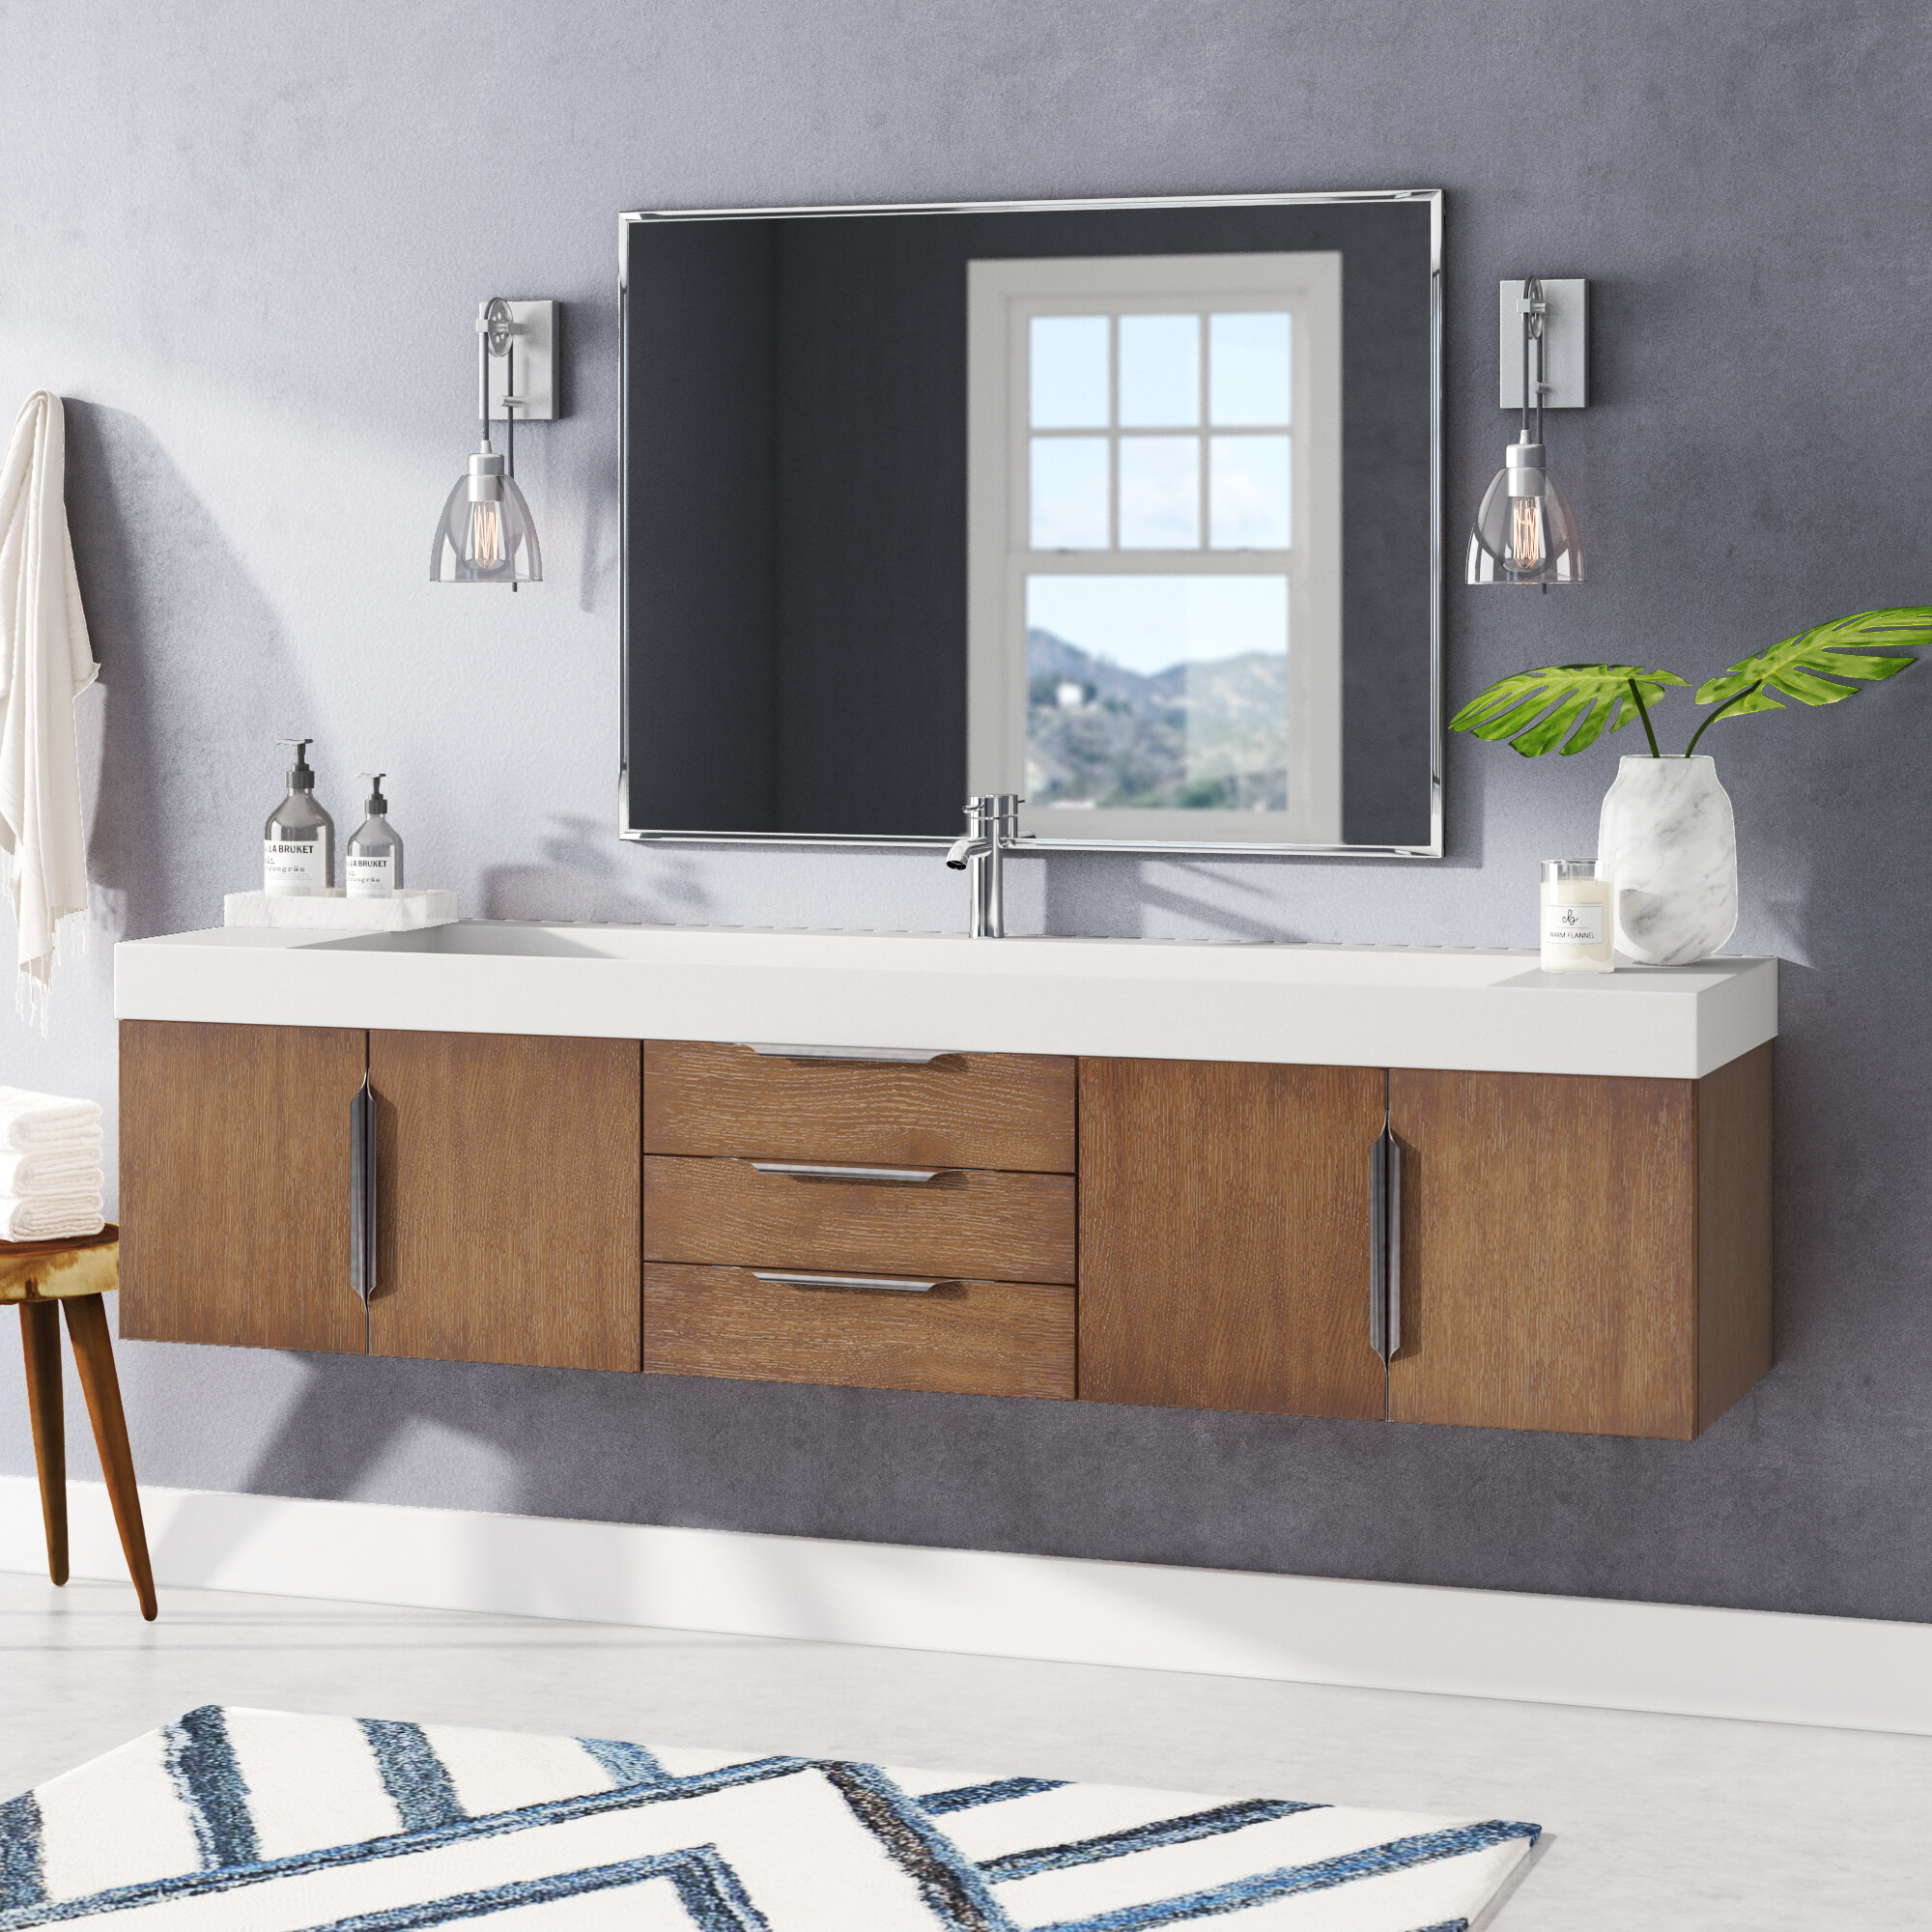 Brilliant Whitstran 73 Wall Mounted Single Bathroom Vanity Set Interior Design Ideas Philsoteloinfo